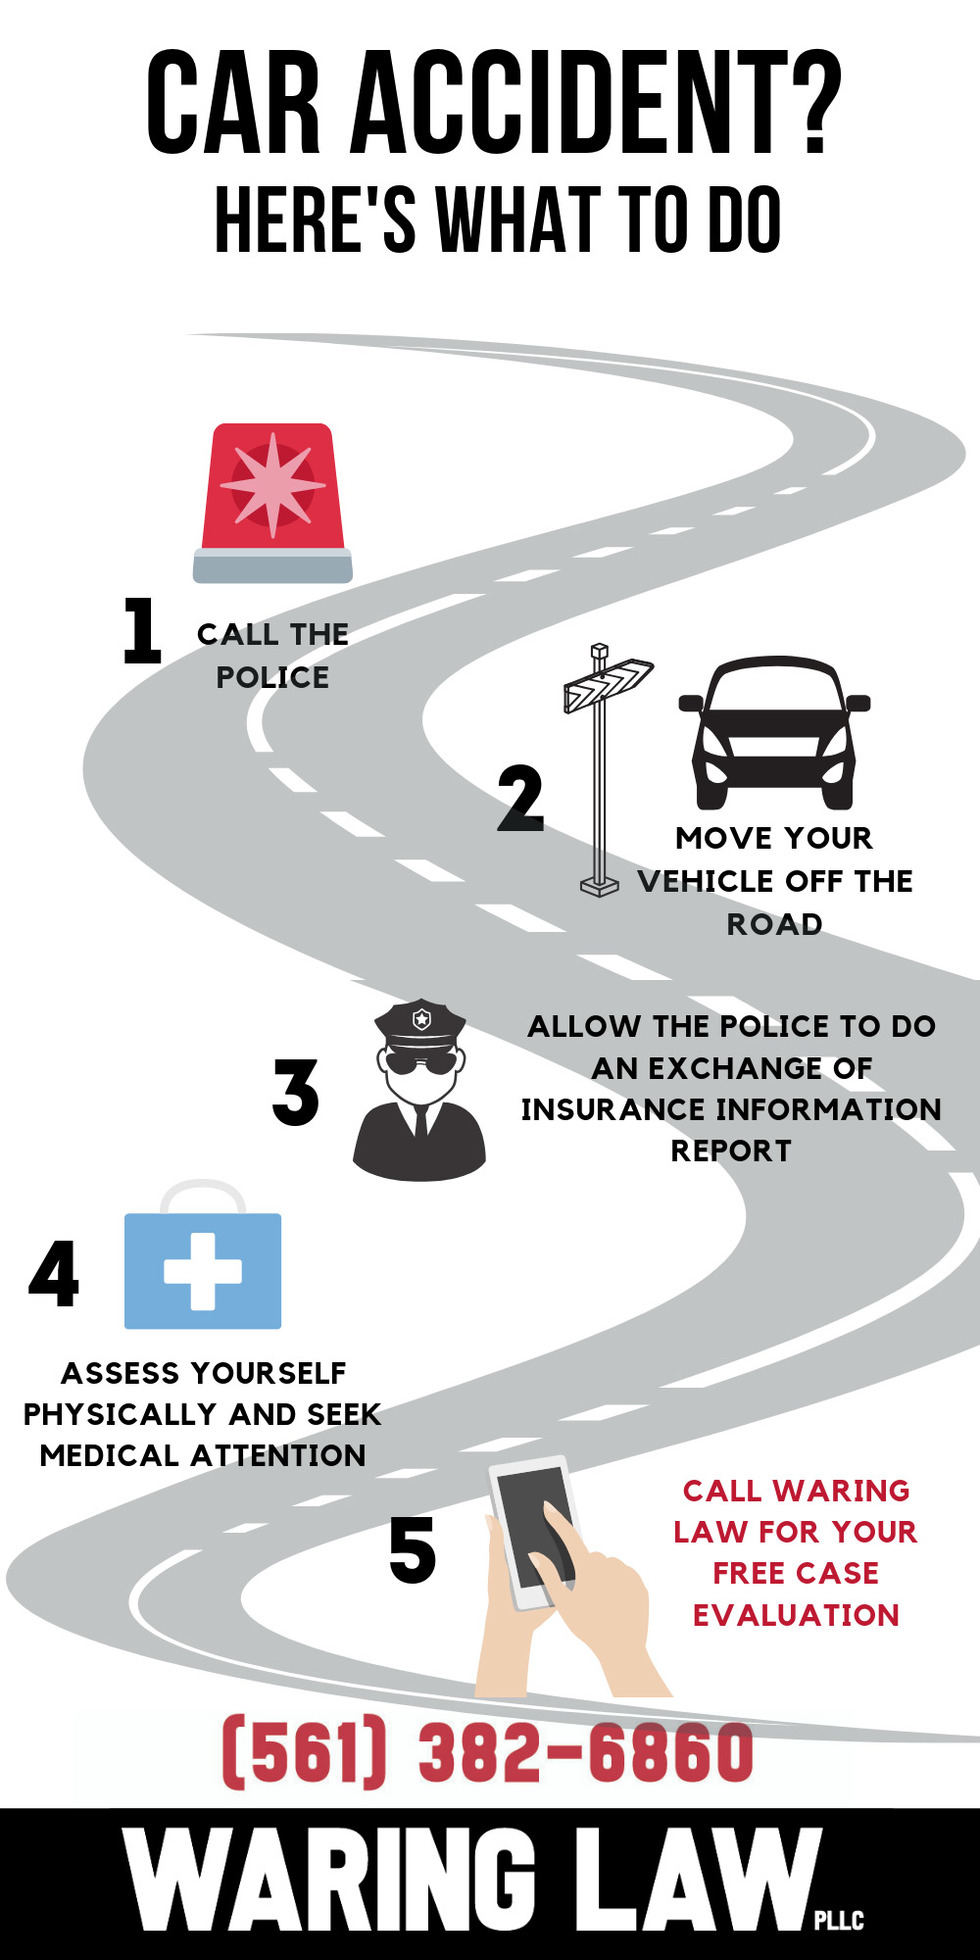 Waring Law: What to do after car accident in South Florida infographic